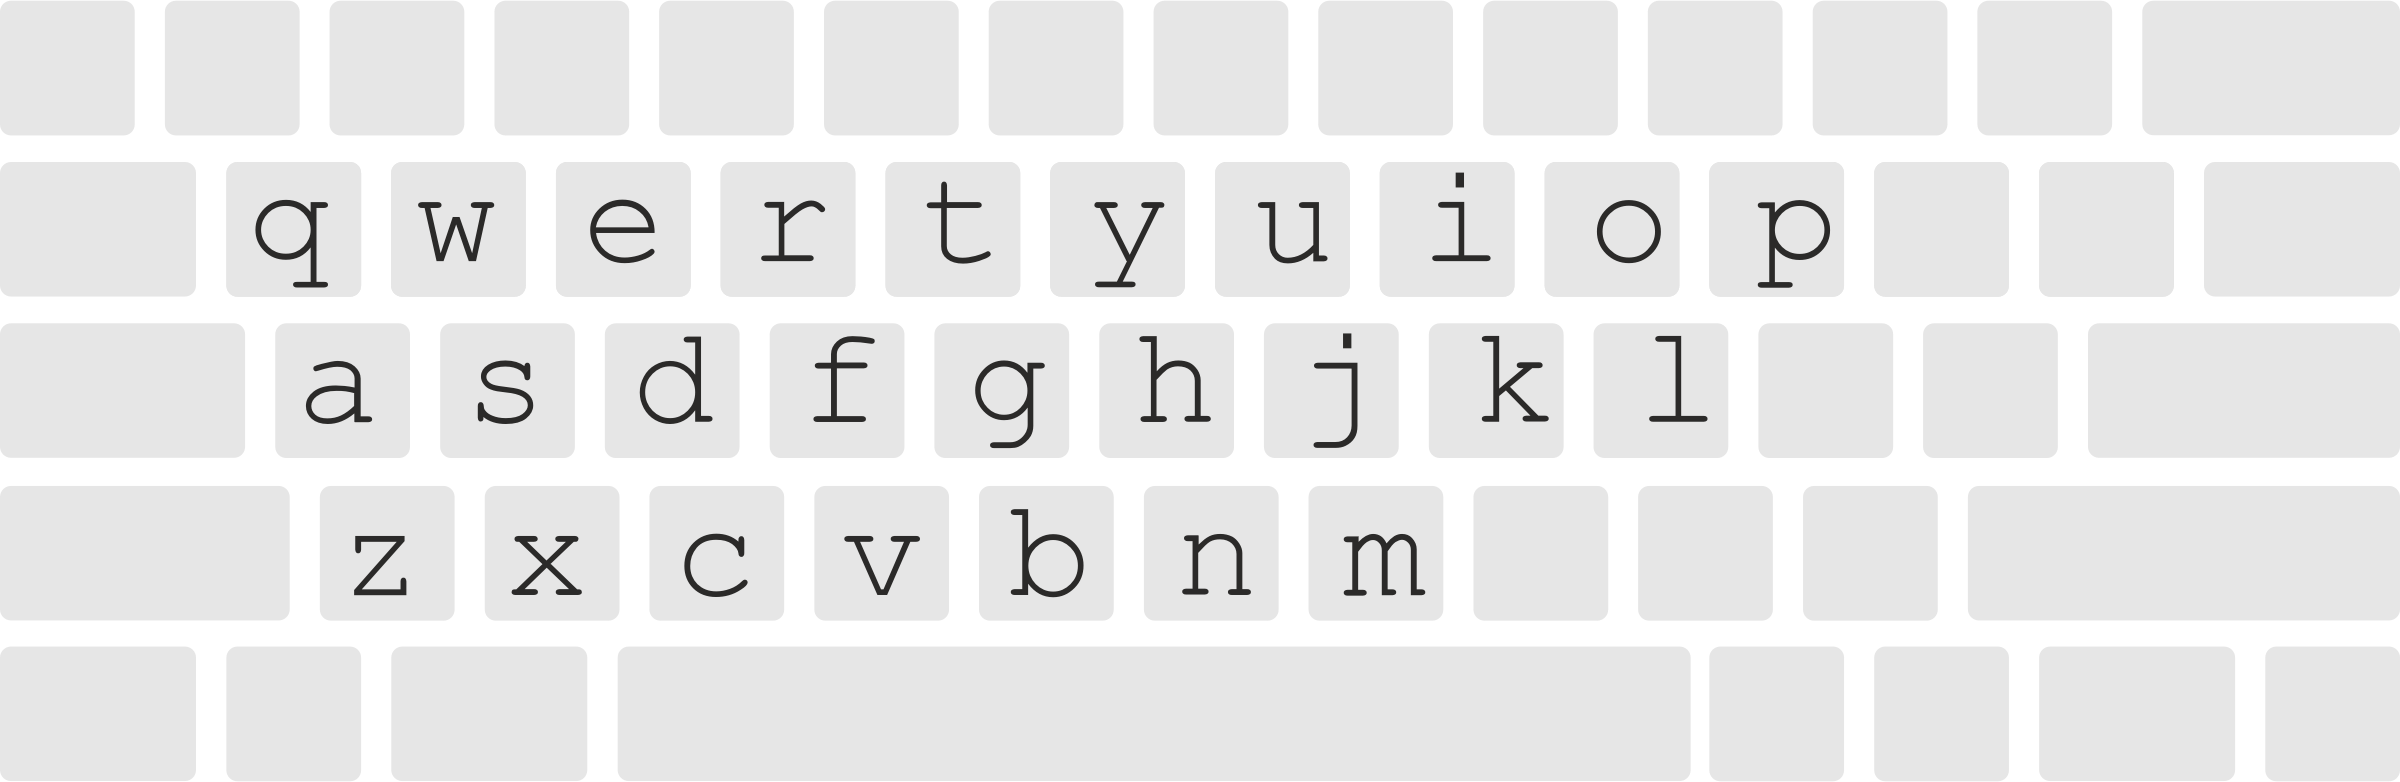 White clipart keyboard. Layout with letters big